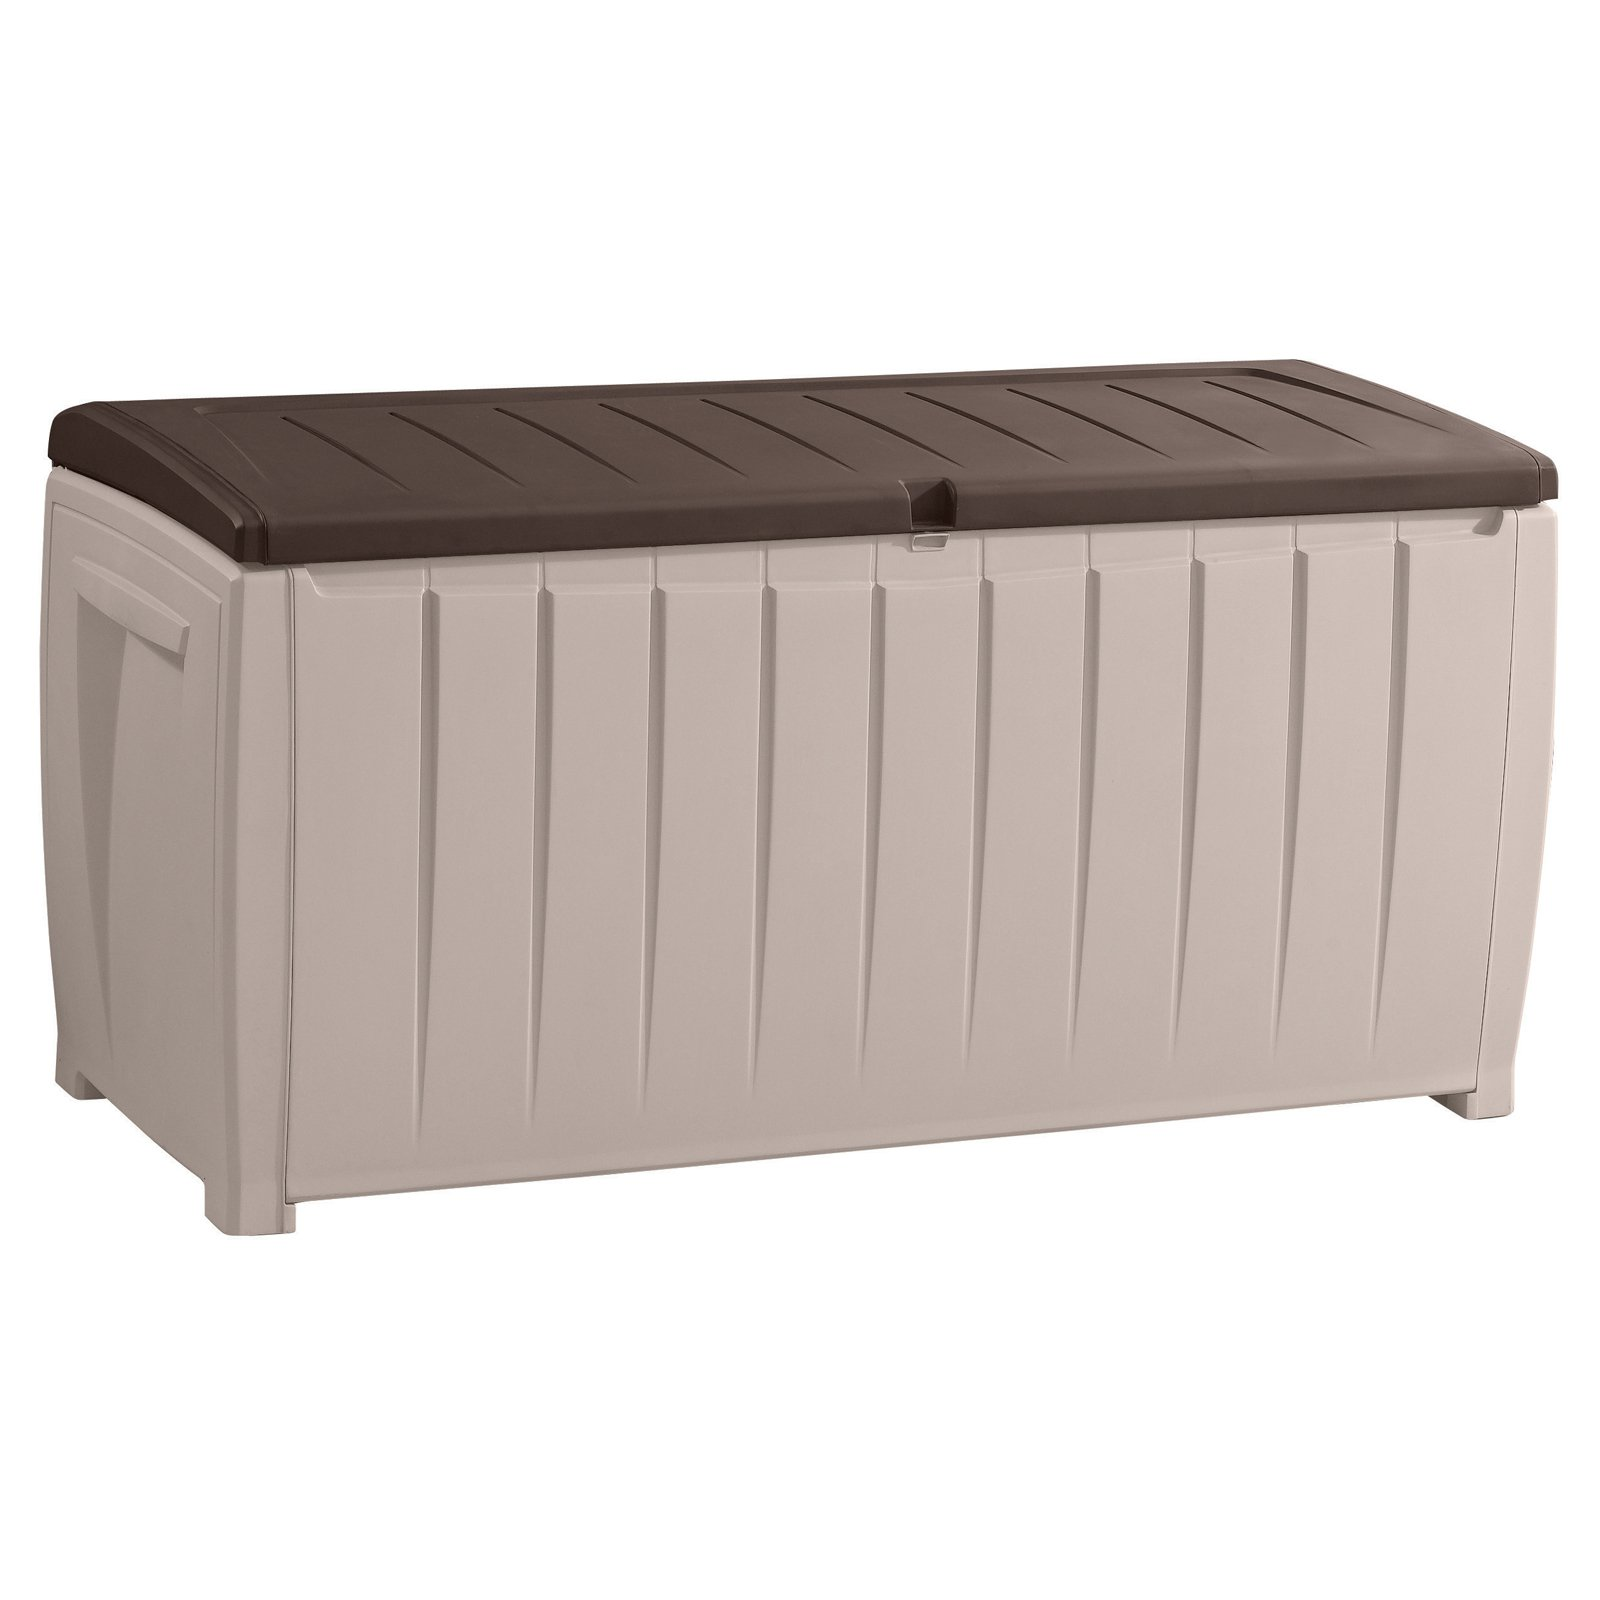 Keter Westwood Plastic Deck Storage Container Box Outdoor Patio Garden Furniture